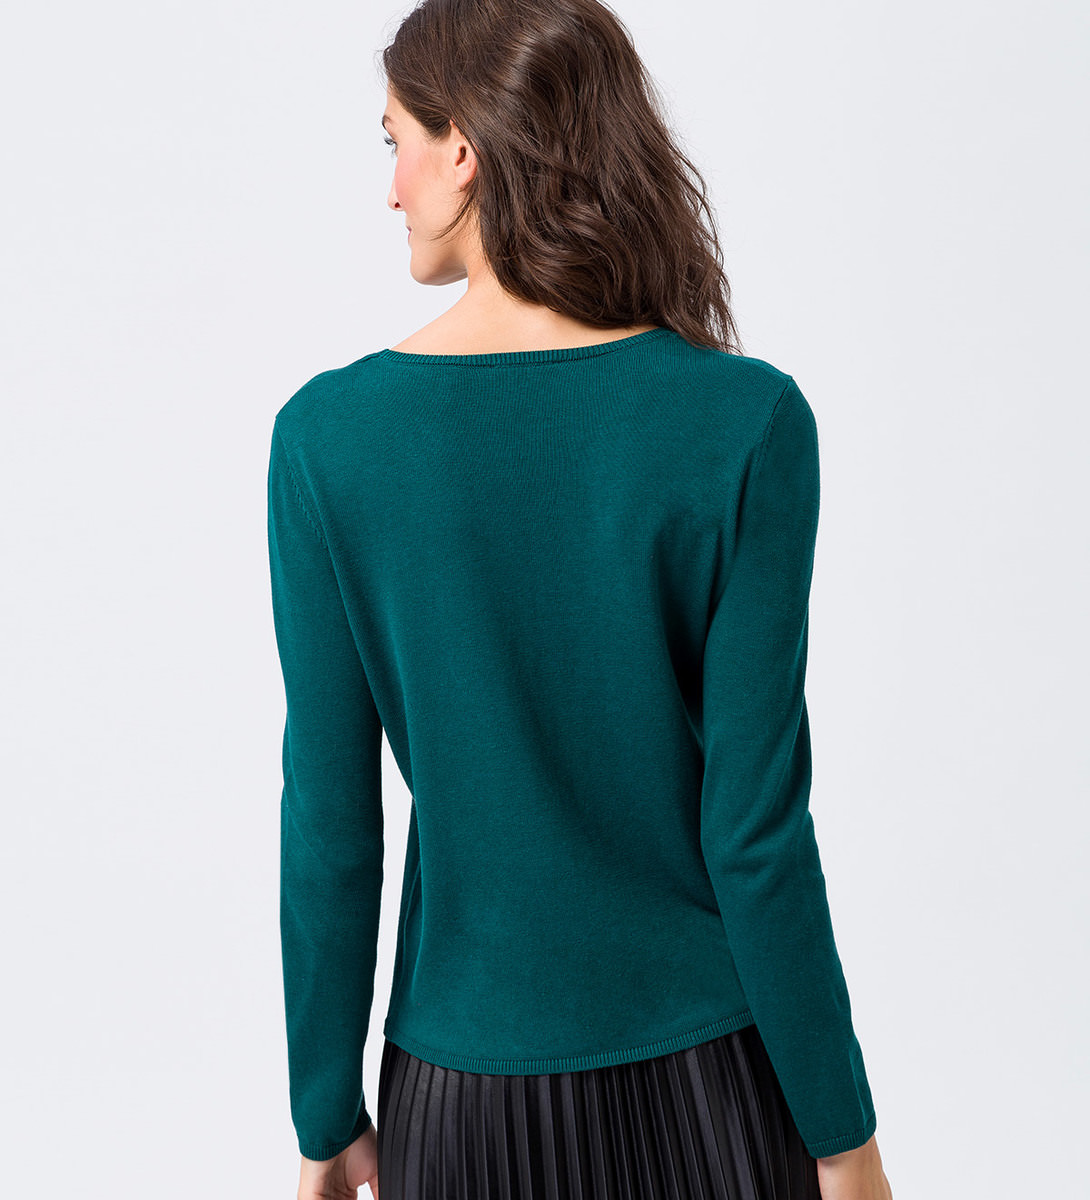 Pullover mit Stickerei in dark teal